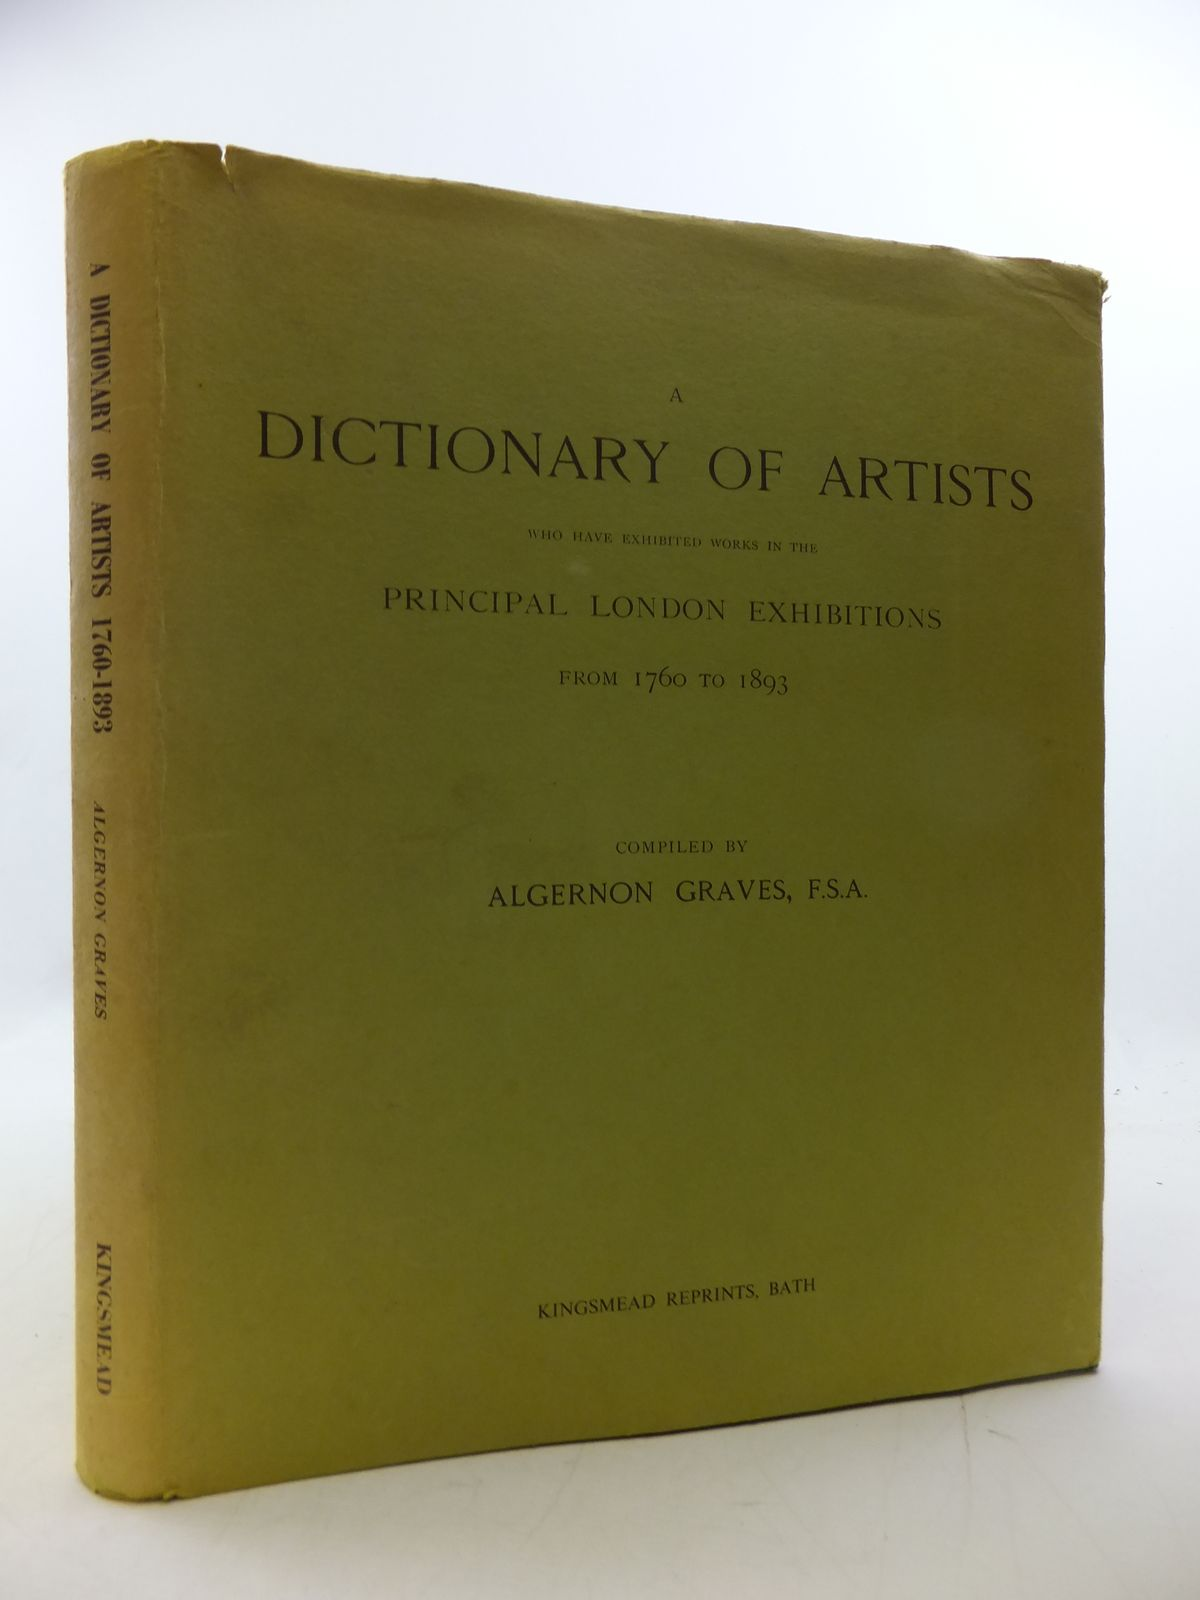 Photo of A DICTIONARY OF ARTISTS WHO HAVE EXHIBITED WORKS IN THE PRINCIPAL LONDON EXHIBITIONS FROM 1760 TO 1893 written by Graves, Algernon published by Kingsmead Reprints (STOCK CODE: 1808489)  for sale by Stella & Rose's Books